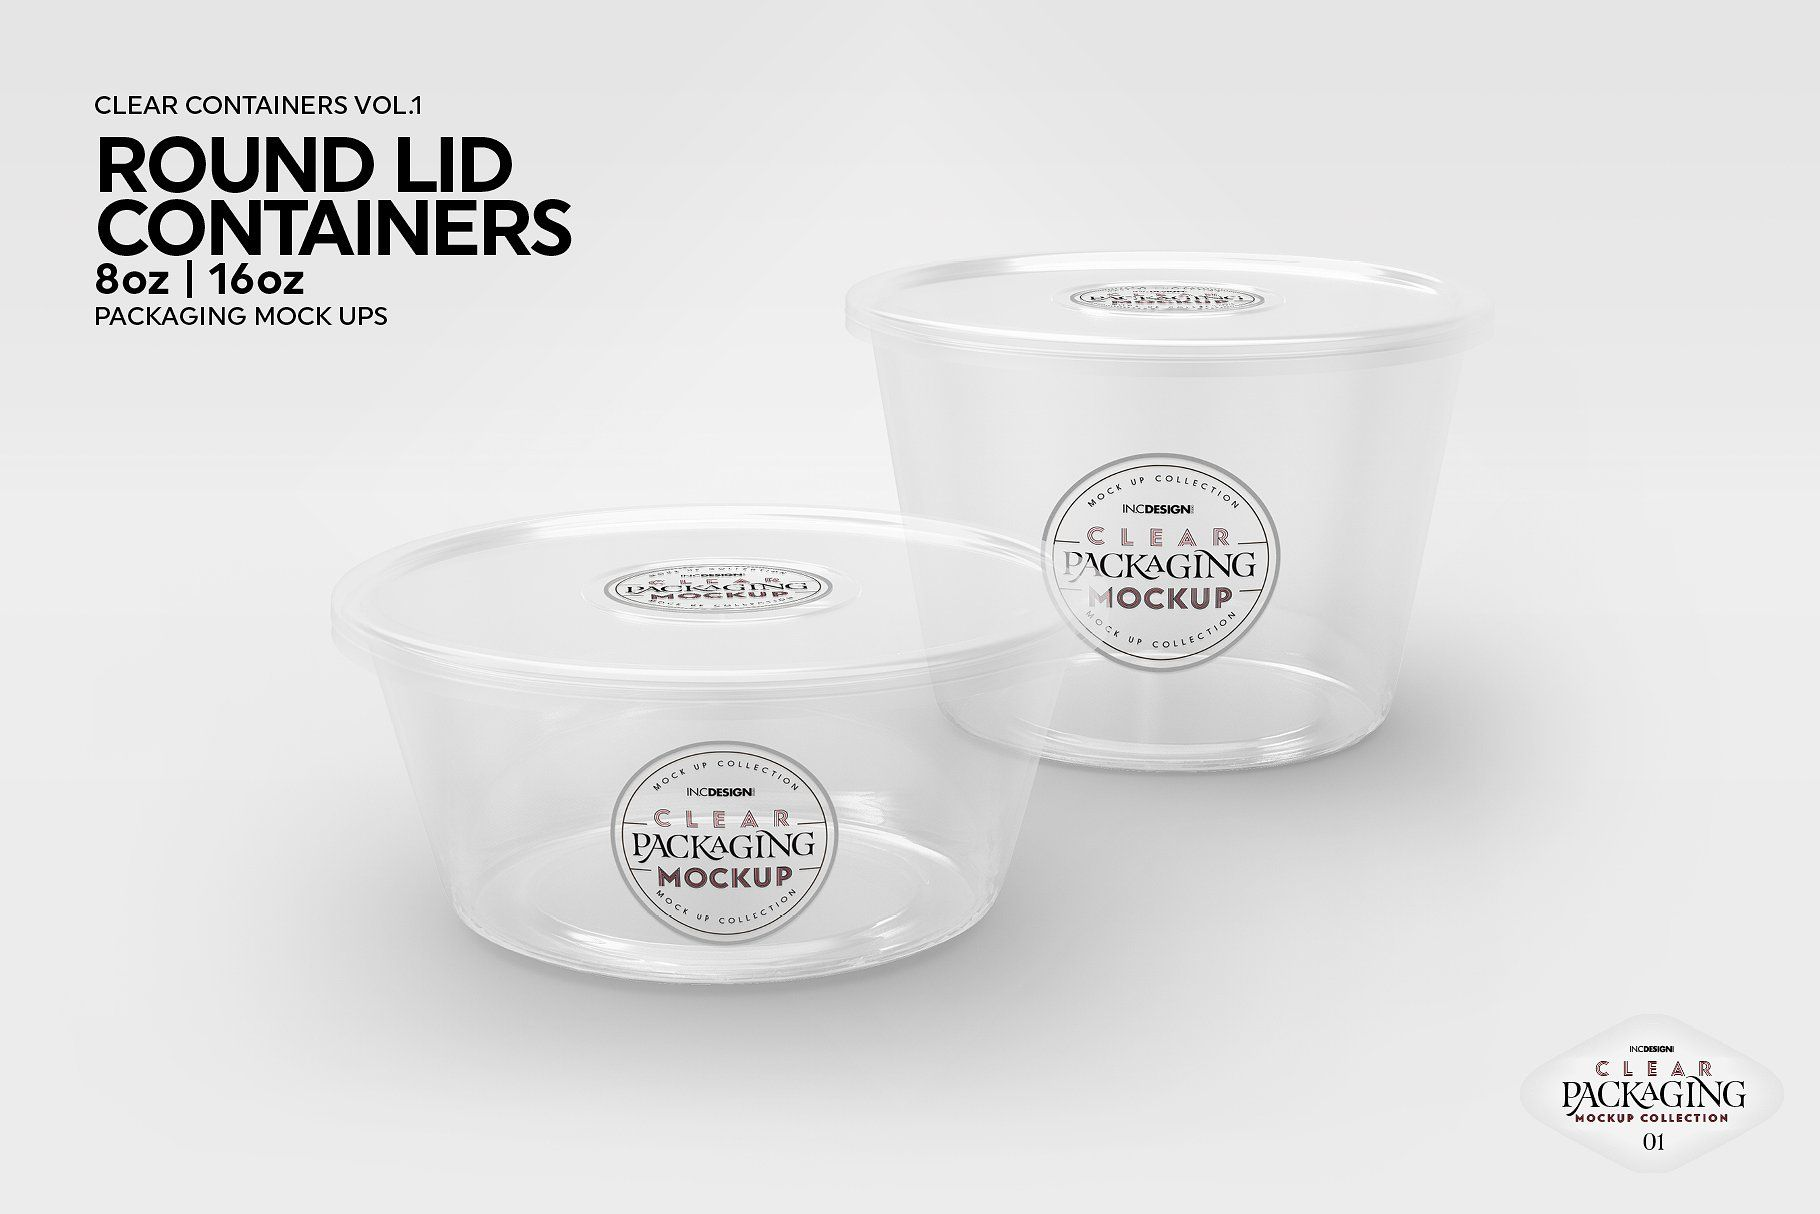 Download 01 Clear Container Packaging Mockups | Packaging mockup ...